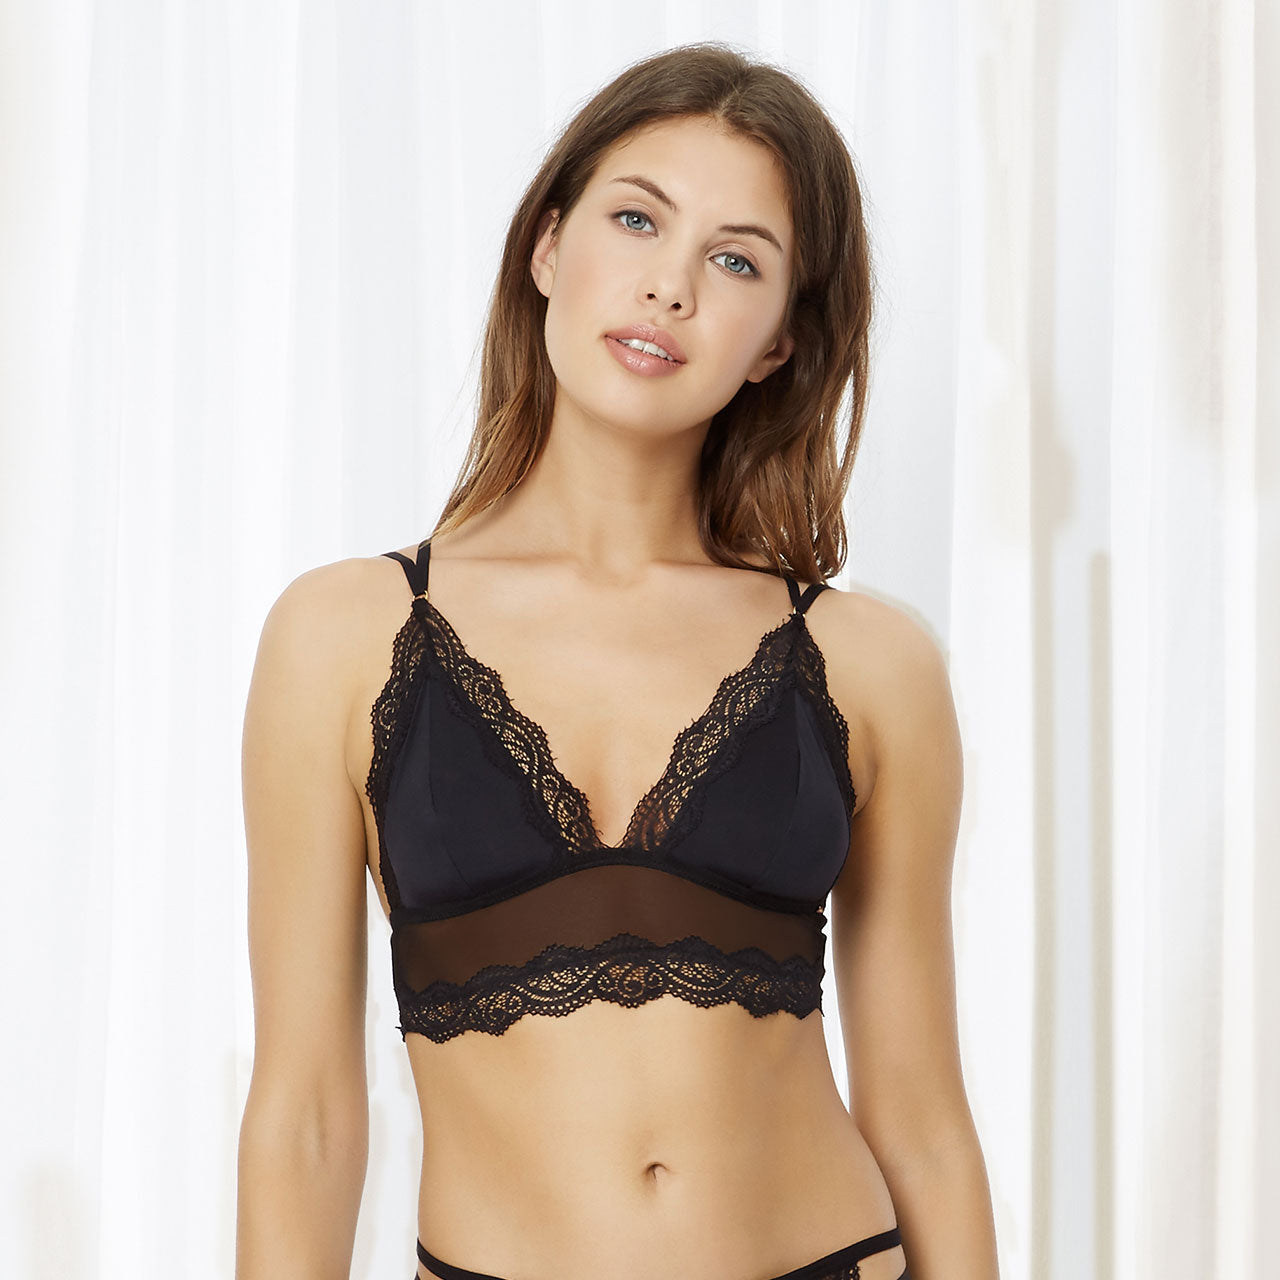 Make a statement in this stunning longline bralette designed to be seen. Delicate mesh hugs the figure whilst the opulent lace trimming enhances the bust creating a flirtatious feel to the look. Multiple directional strapping across the back further helps to accentuate and flatter the shoulder line, whilst also creating an edgier feel. This bralette also does not feature any fastenings giving it a more smooth and comfortable finish. Style with your fave statement jewellery for the ultimate go-to festival look.